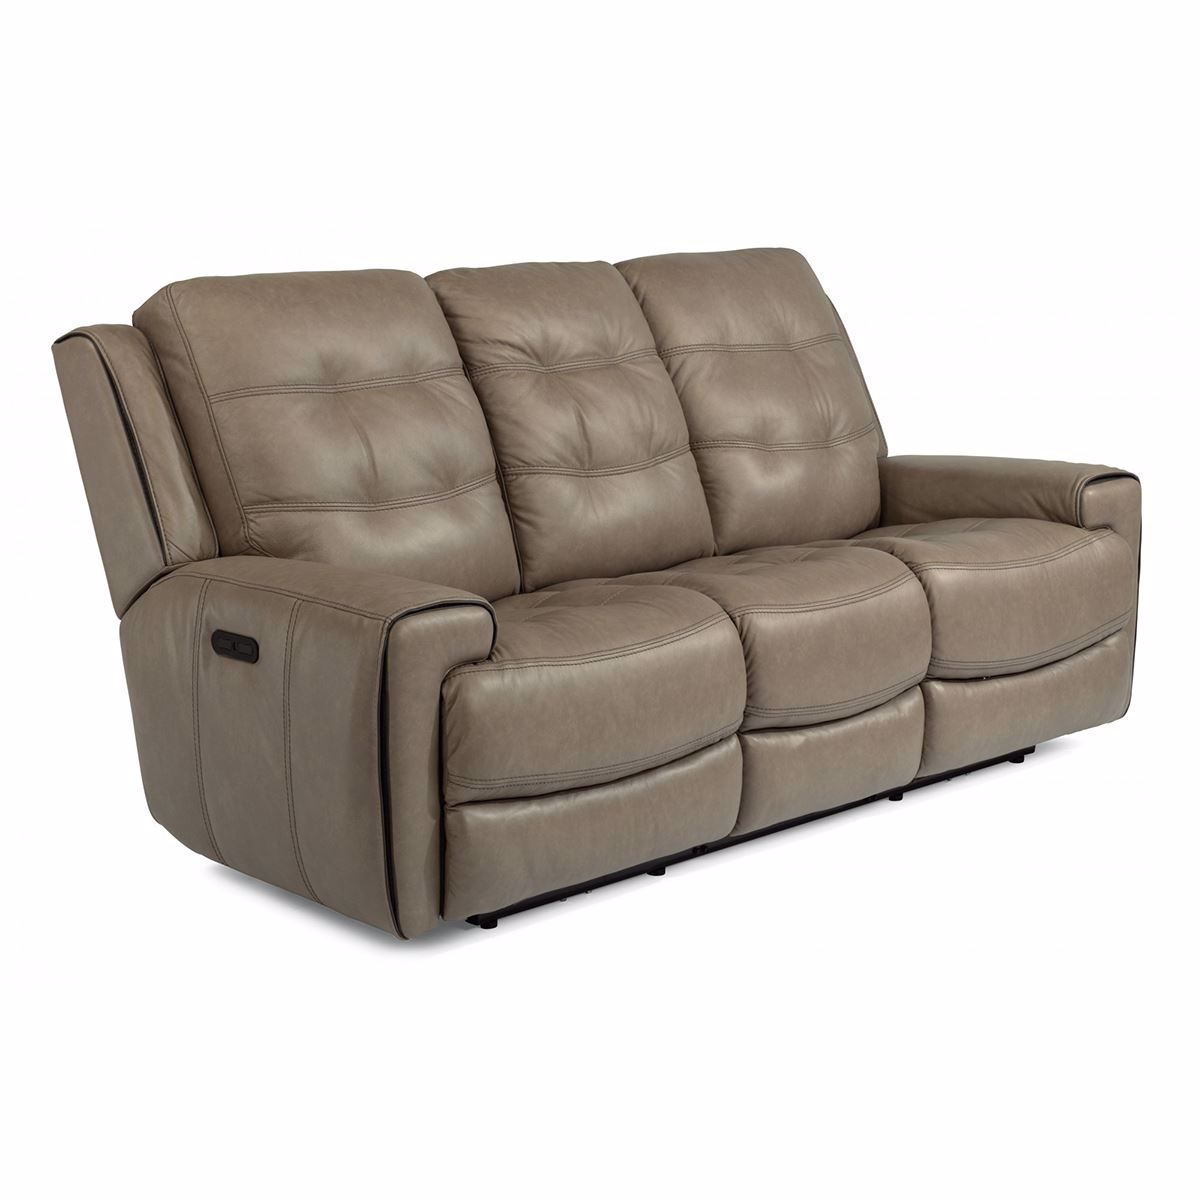 Wicklow Power Reclining Leather Sofa With Power Headrest Pertaining To Charleston Power Reclining Sofas (View 3 of 15)